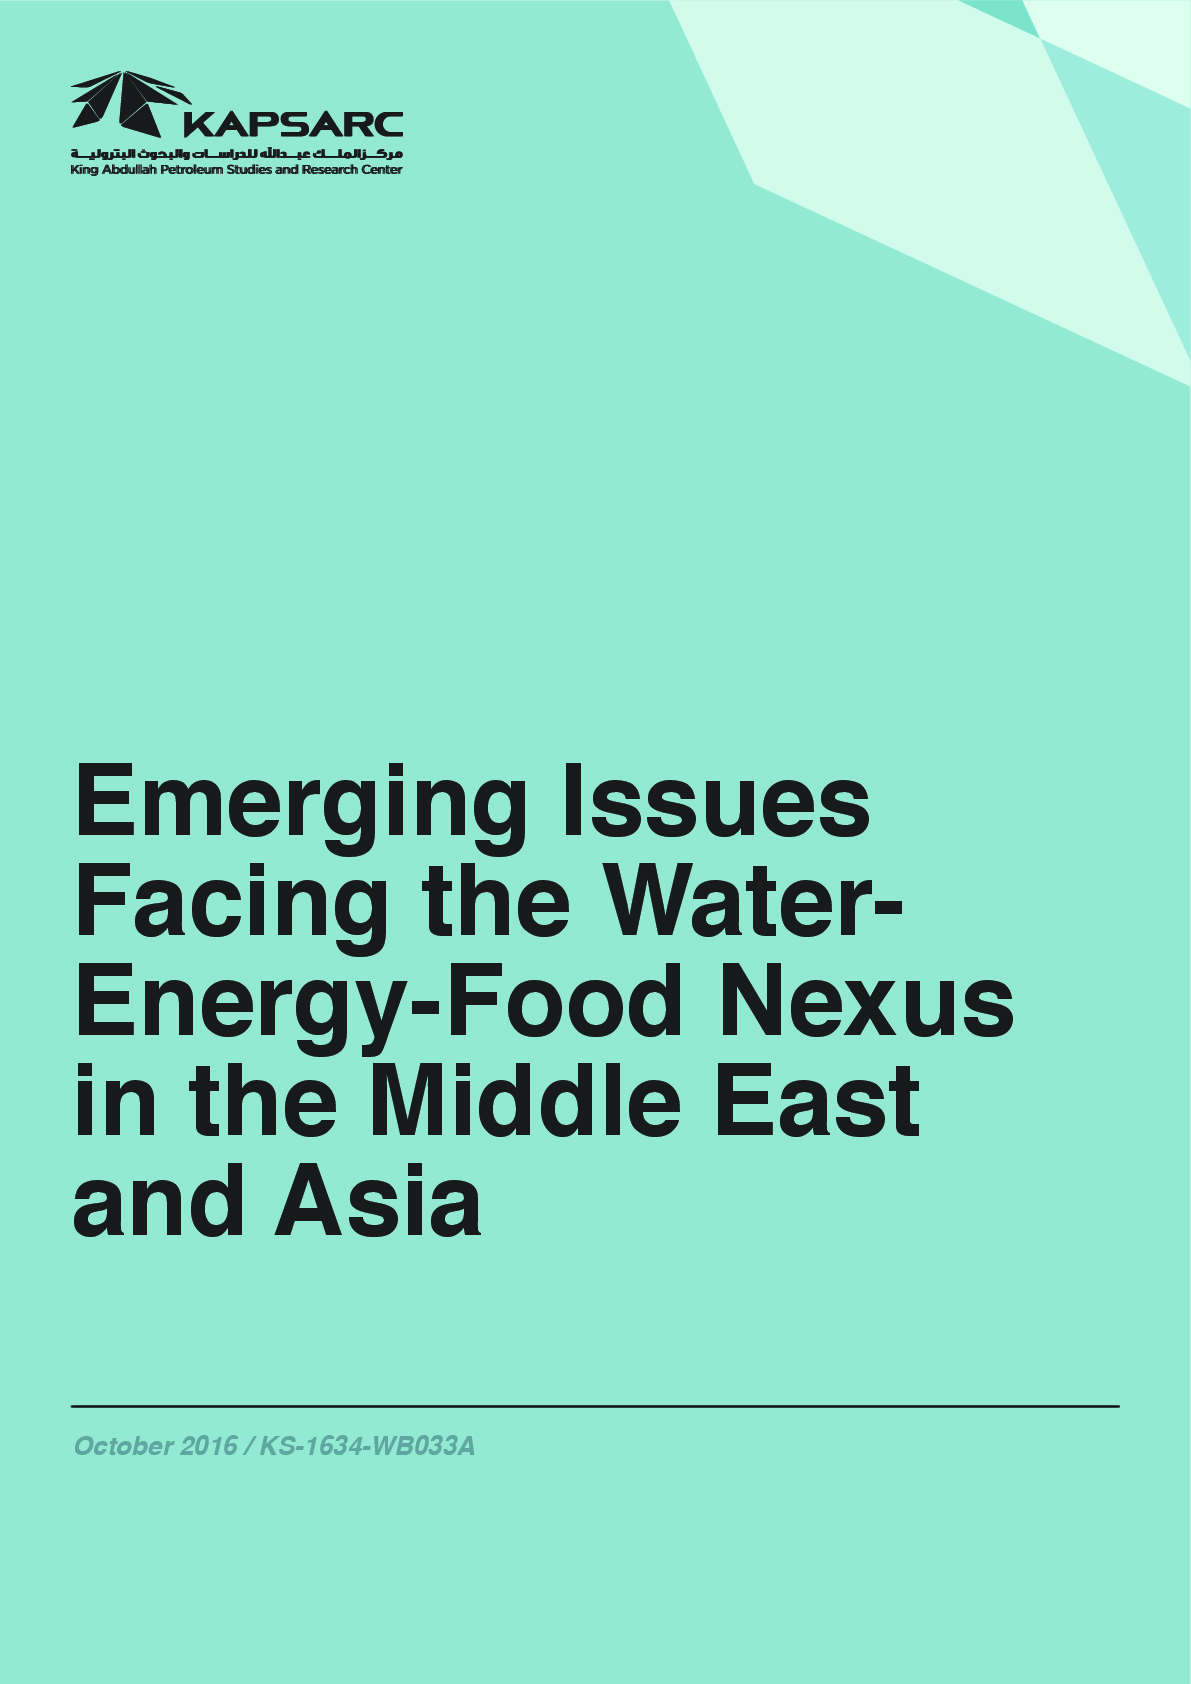 Emerging Issues Facing the Water-Energy-Food Nexus in the Middle East and Asia